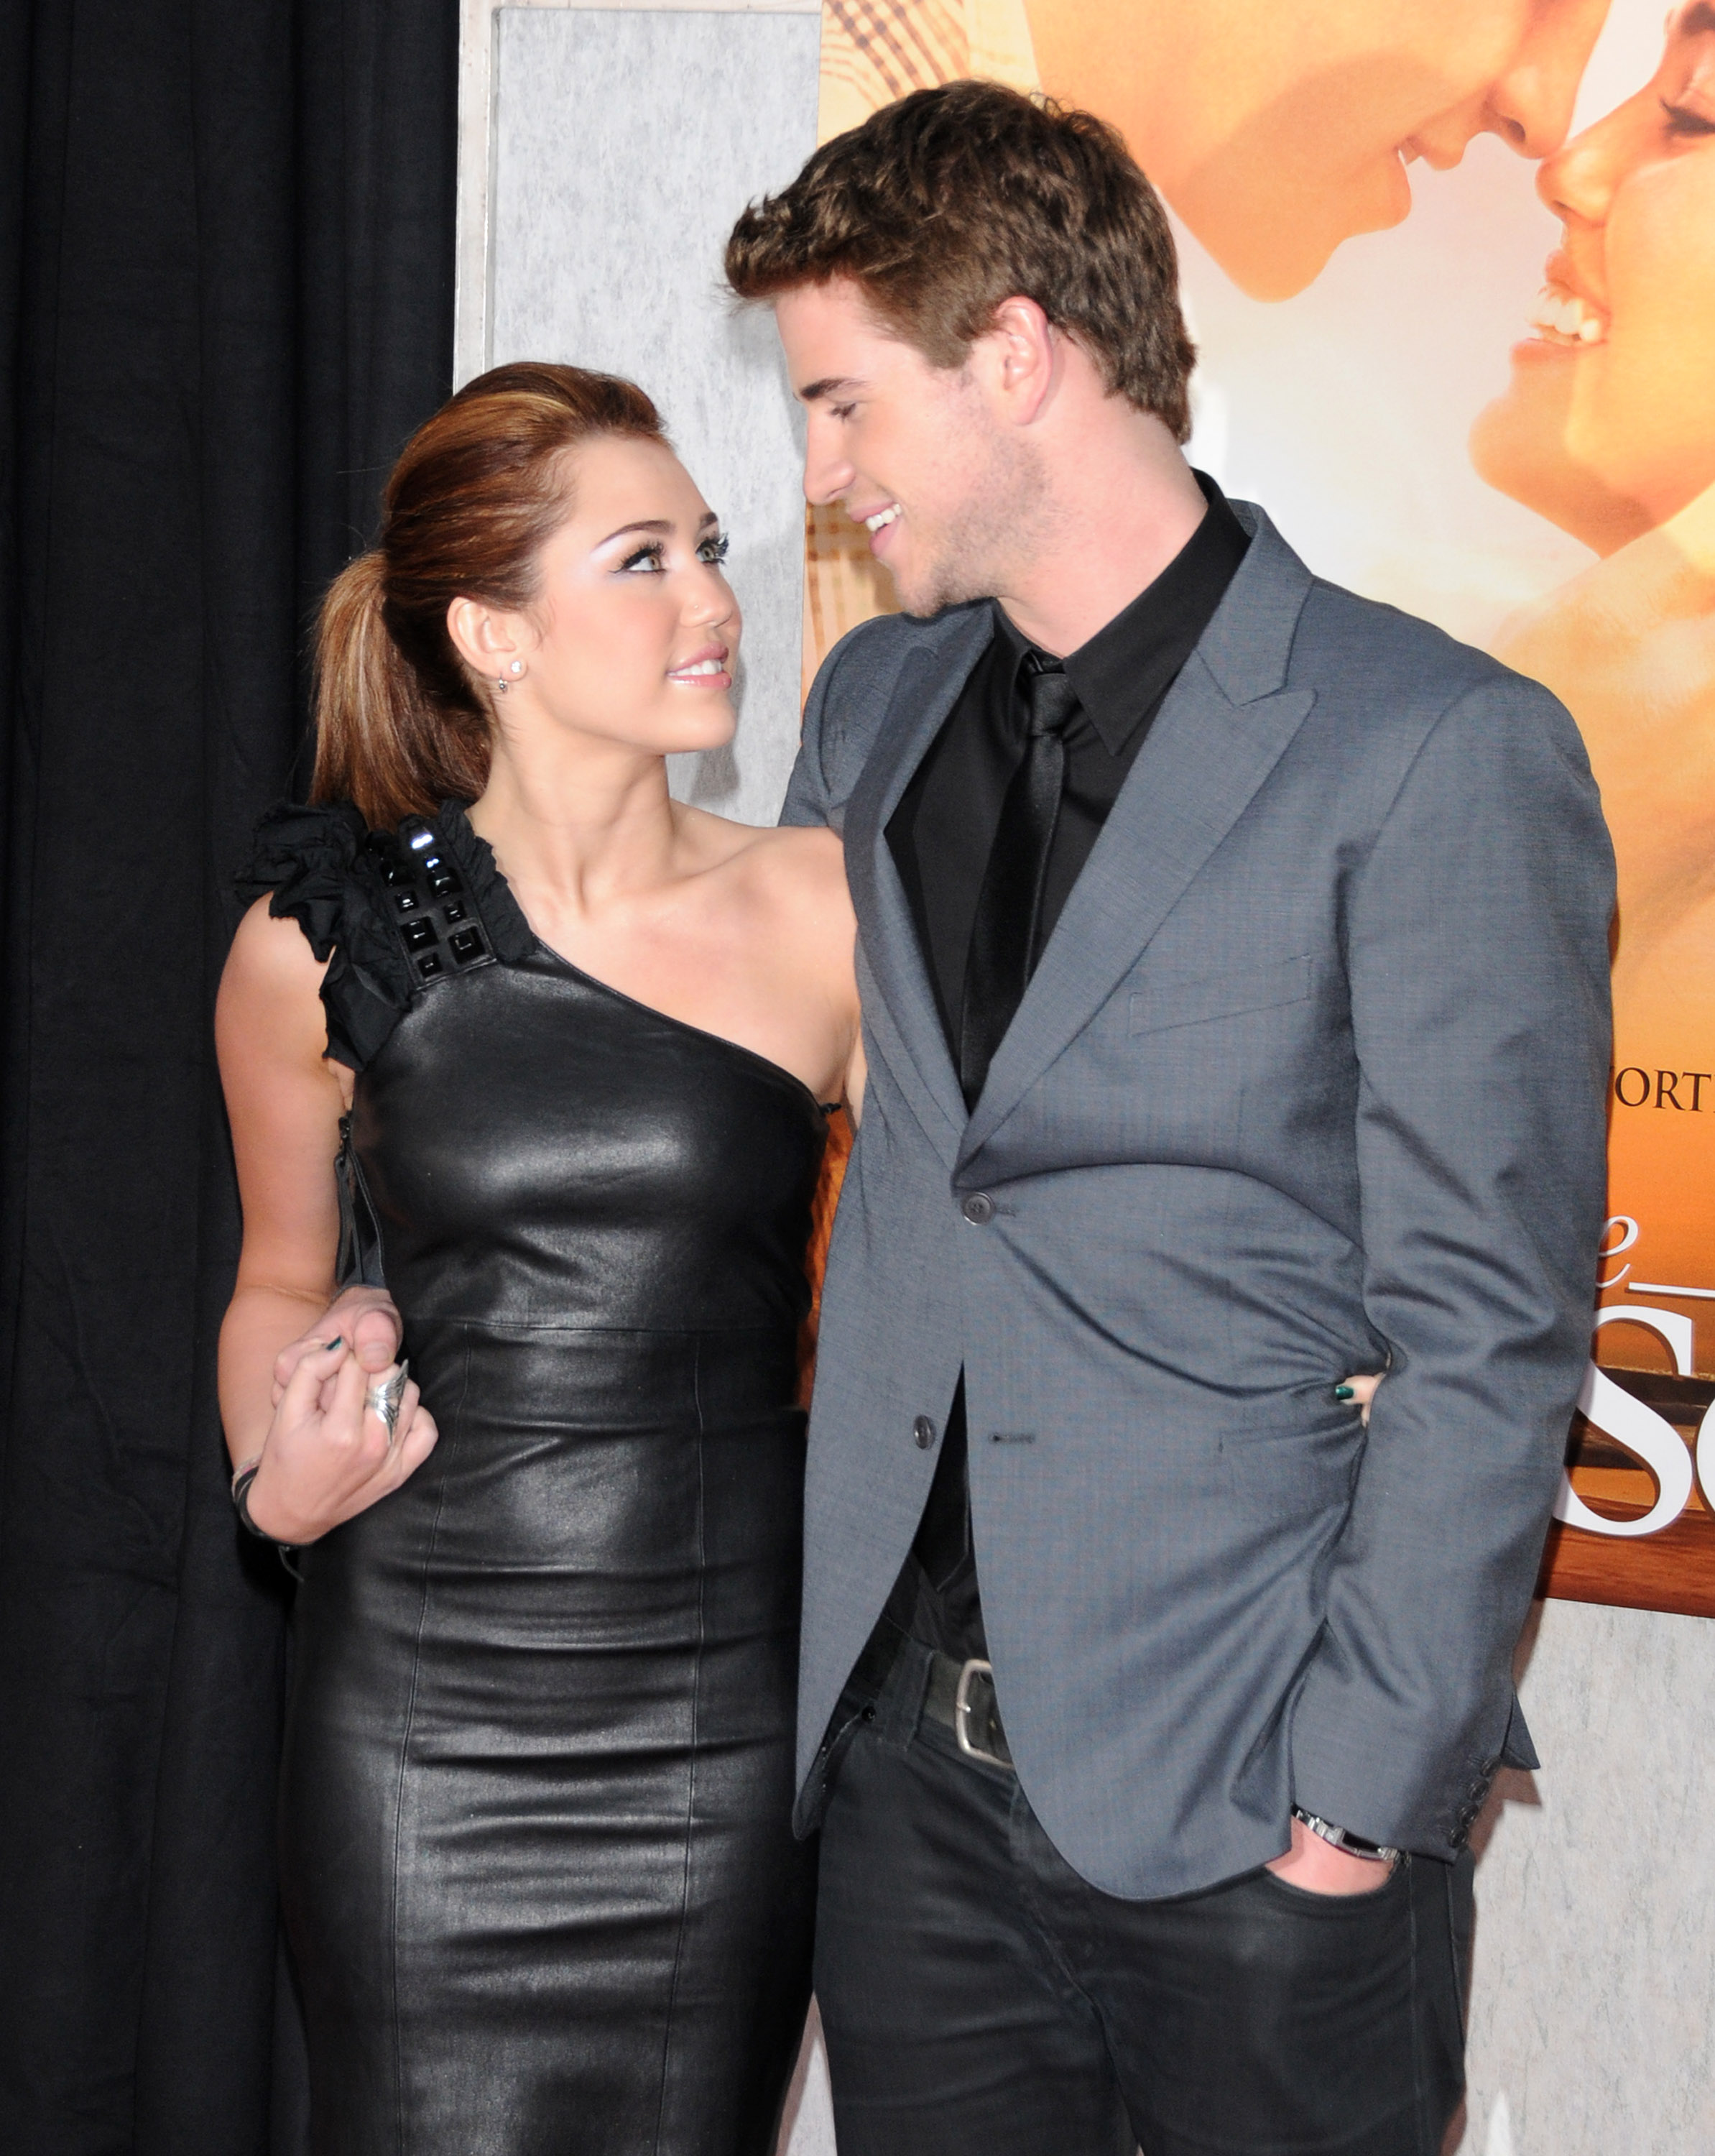 liam hemsworth and miley cyrus dating 2010 Miley cyrus explains why she doesn't envision marriage, even though she's still engaged to liam hemsworth.